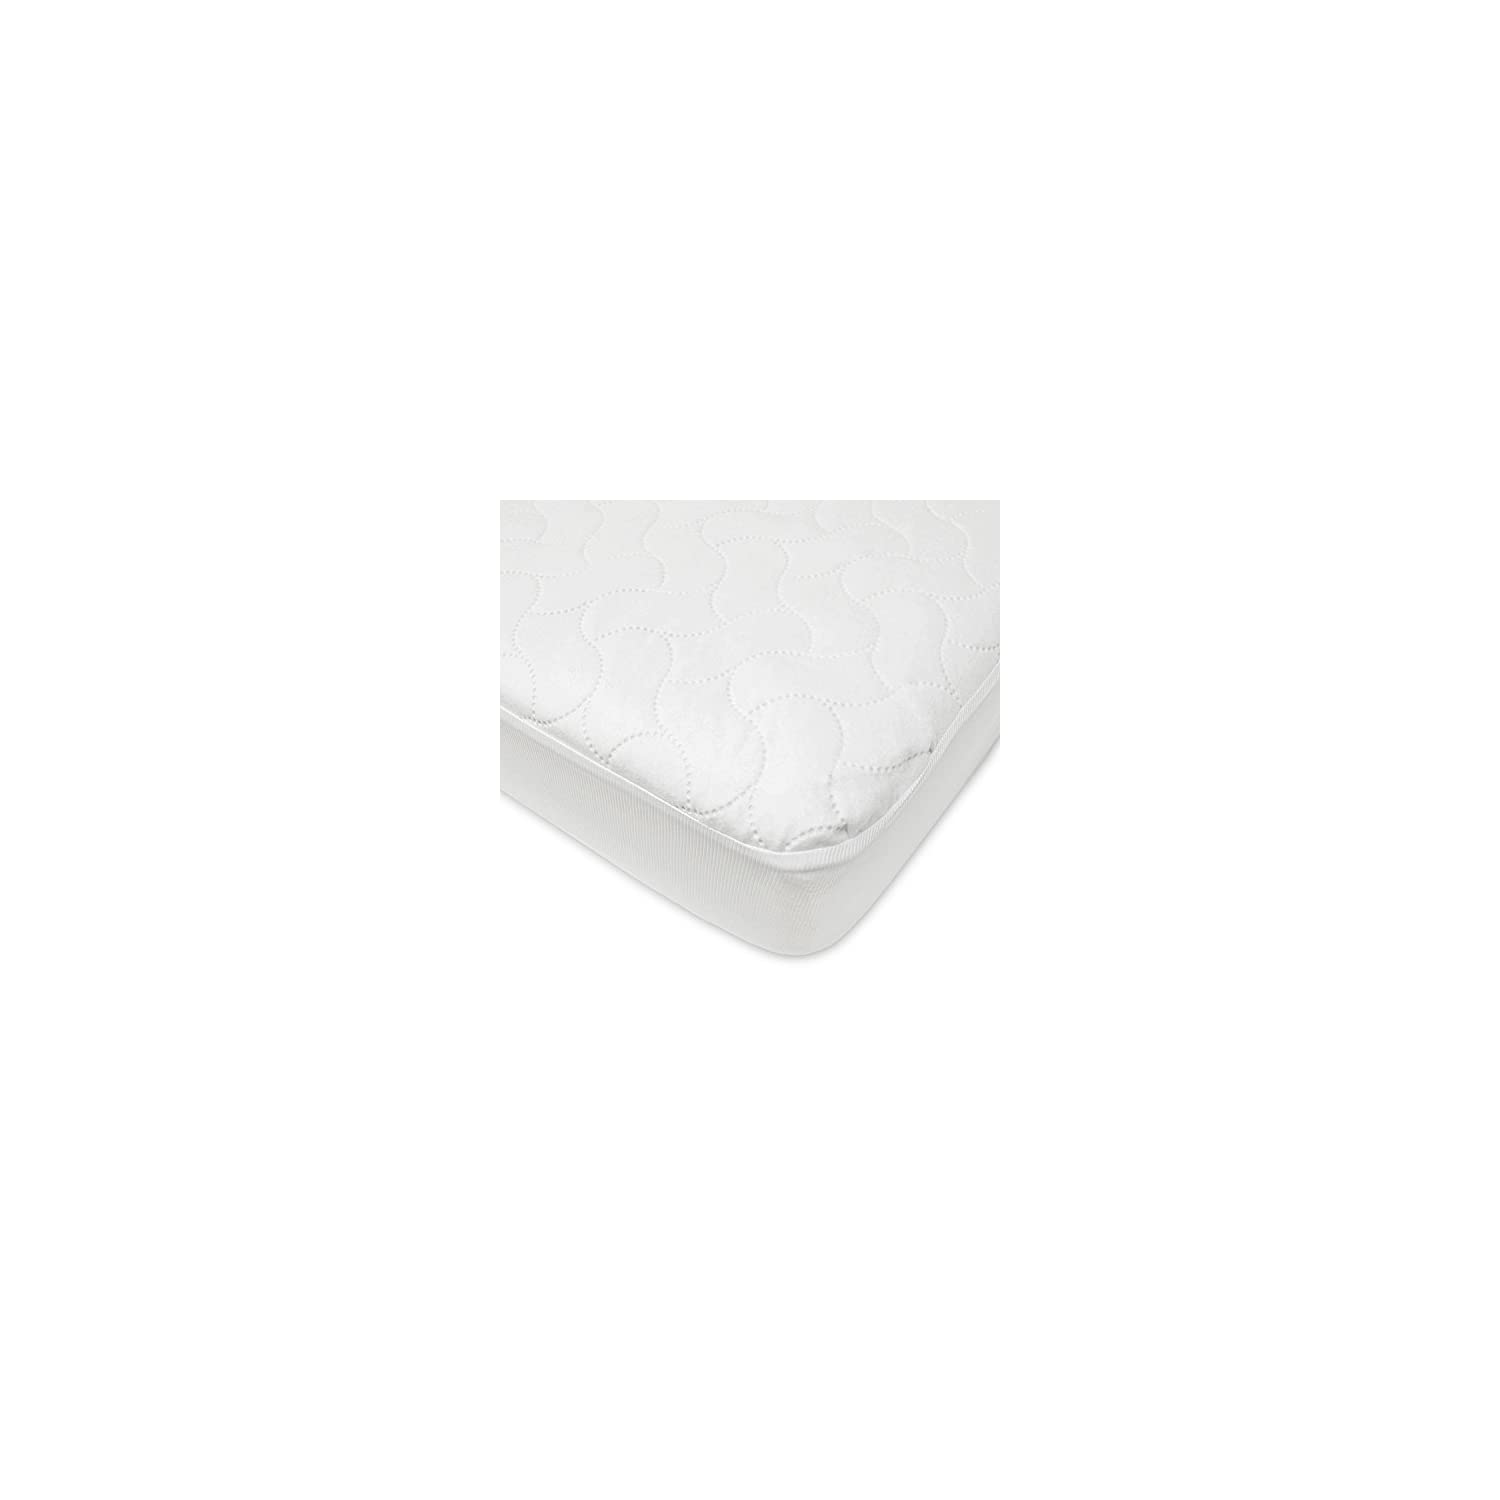 American Baby Company Waterproof Fitted Crib and Toddler Protective Mattress Pad Cover, White (1 Count), for Boys and Girls